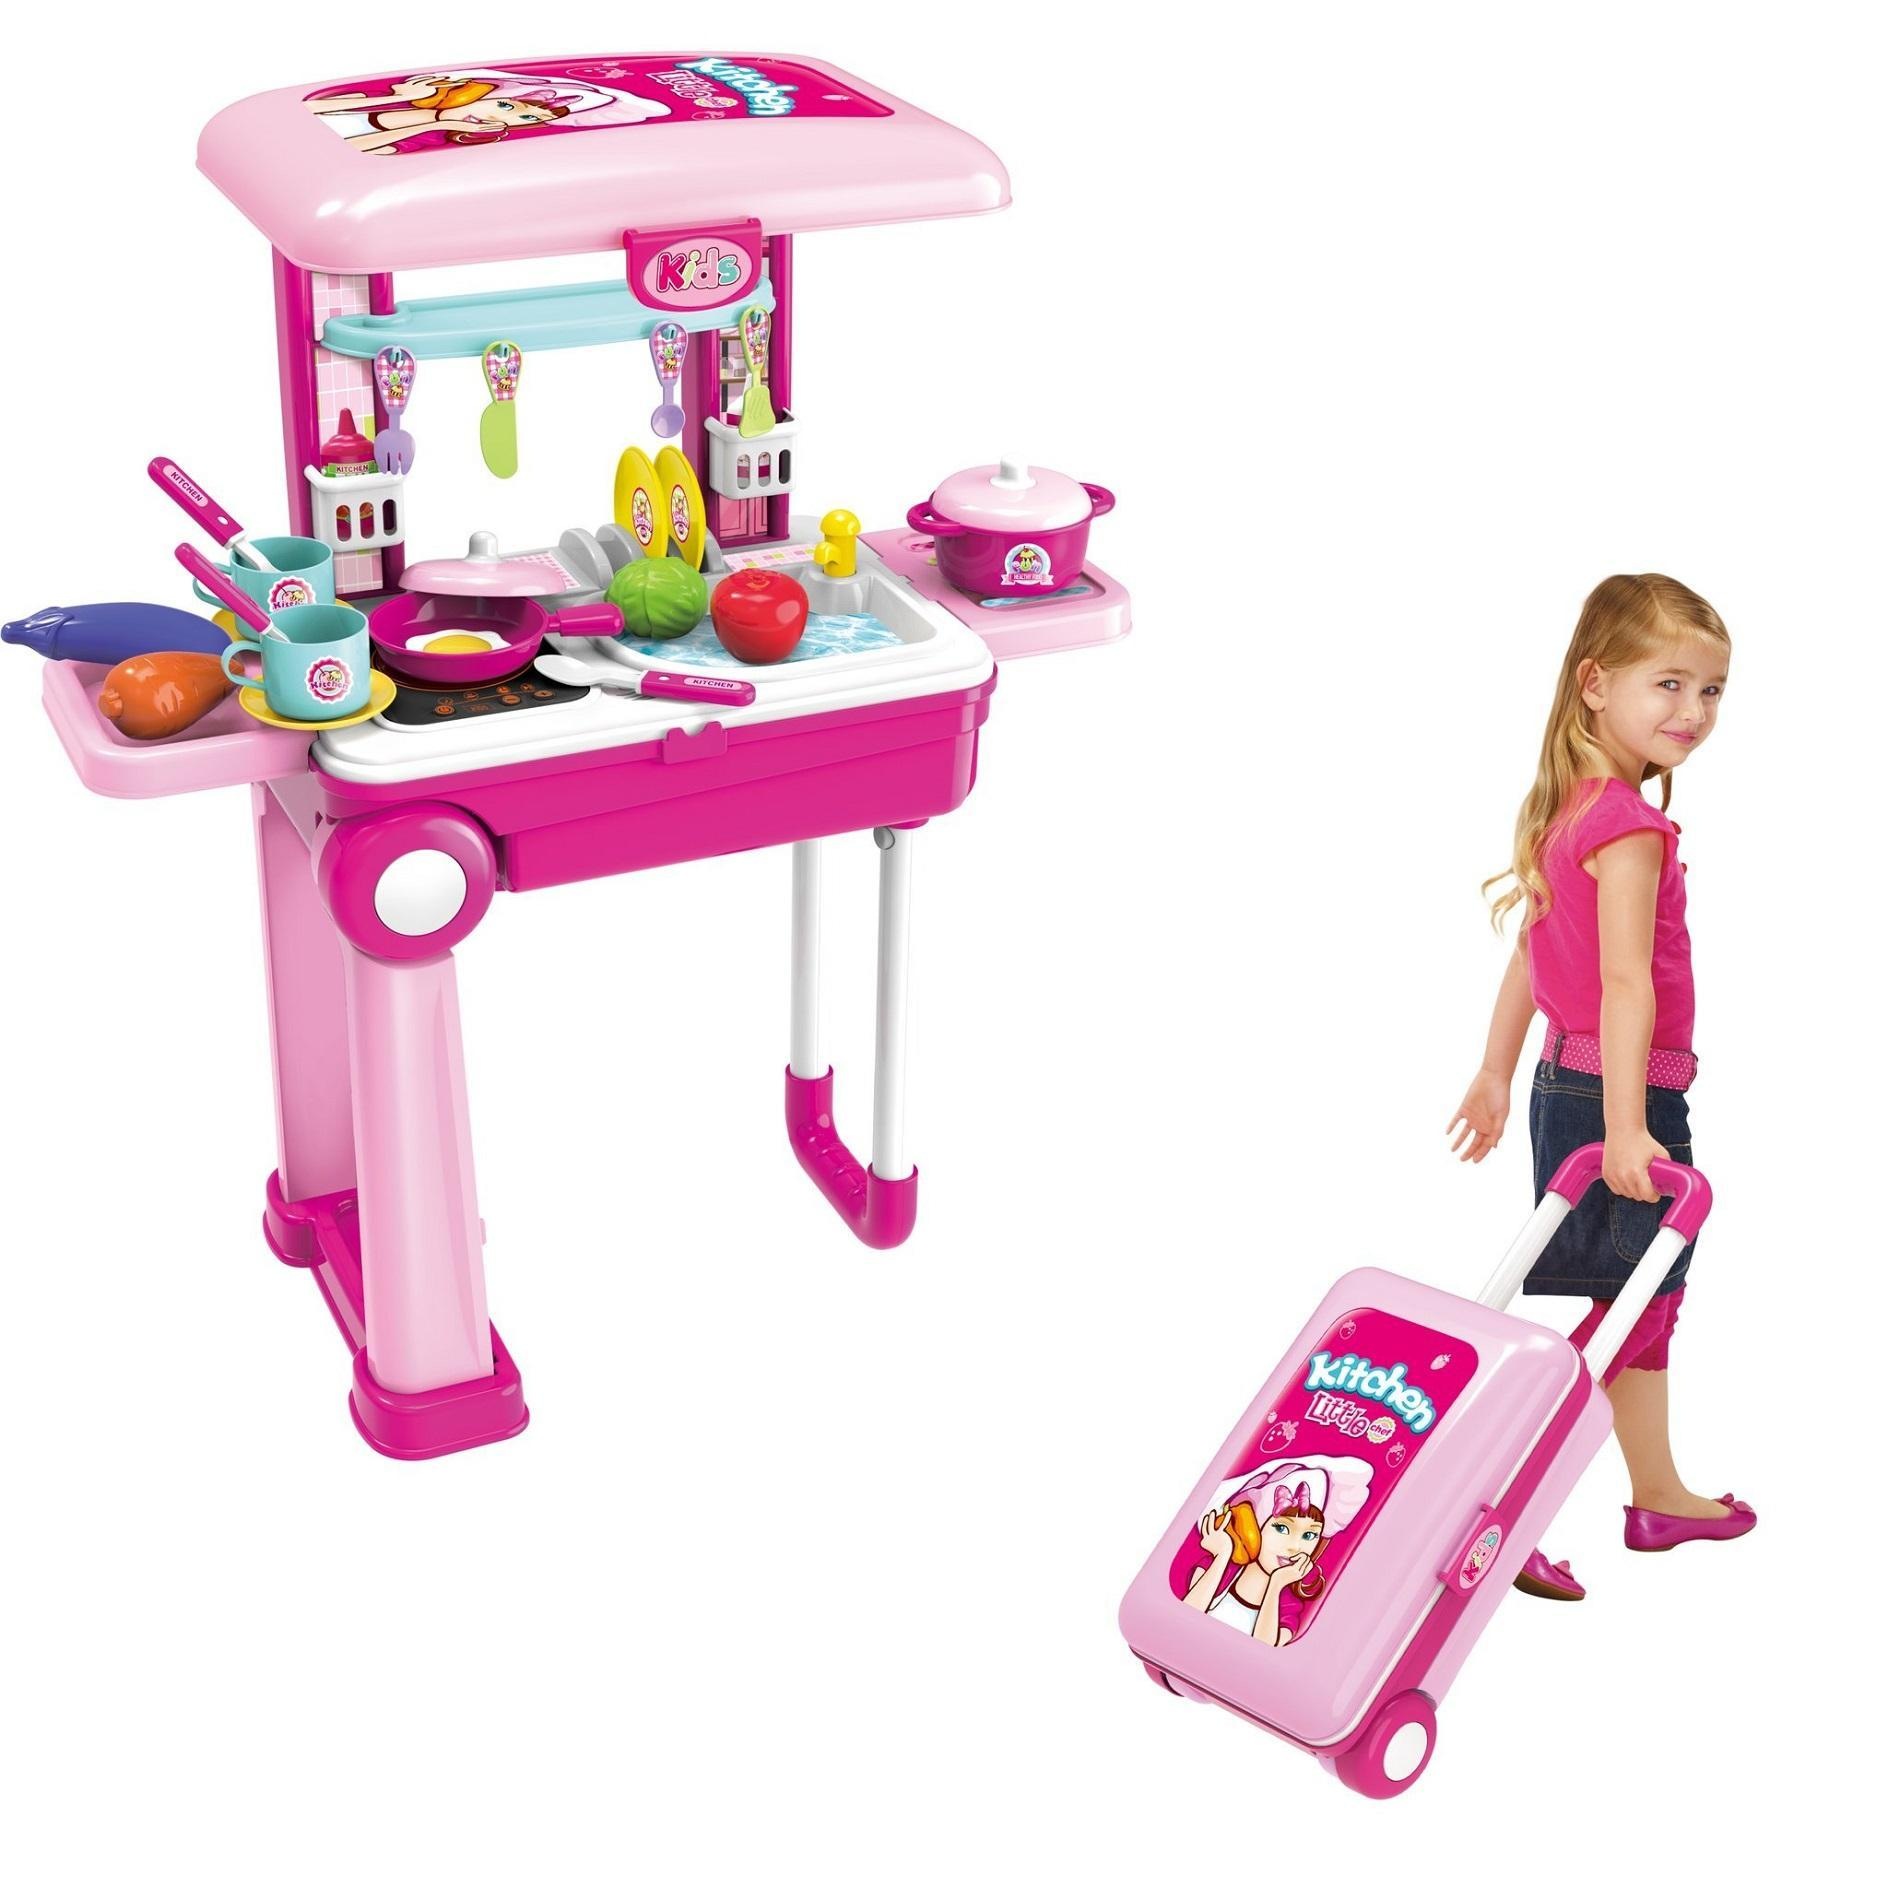 3 In 1 Luggage Kitchen Set Kitchen Set For Baby Girls Kitchen Toys